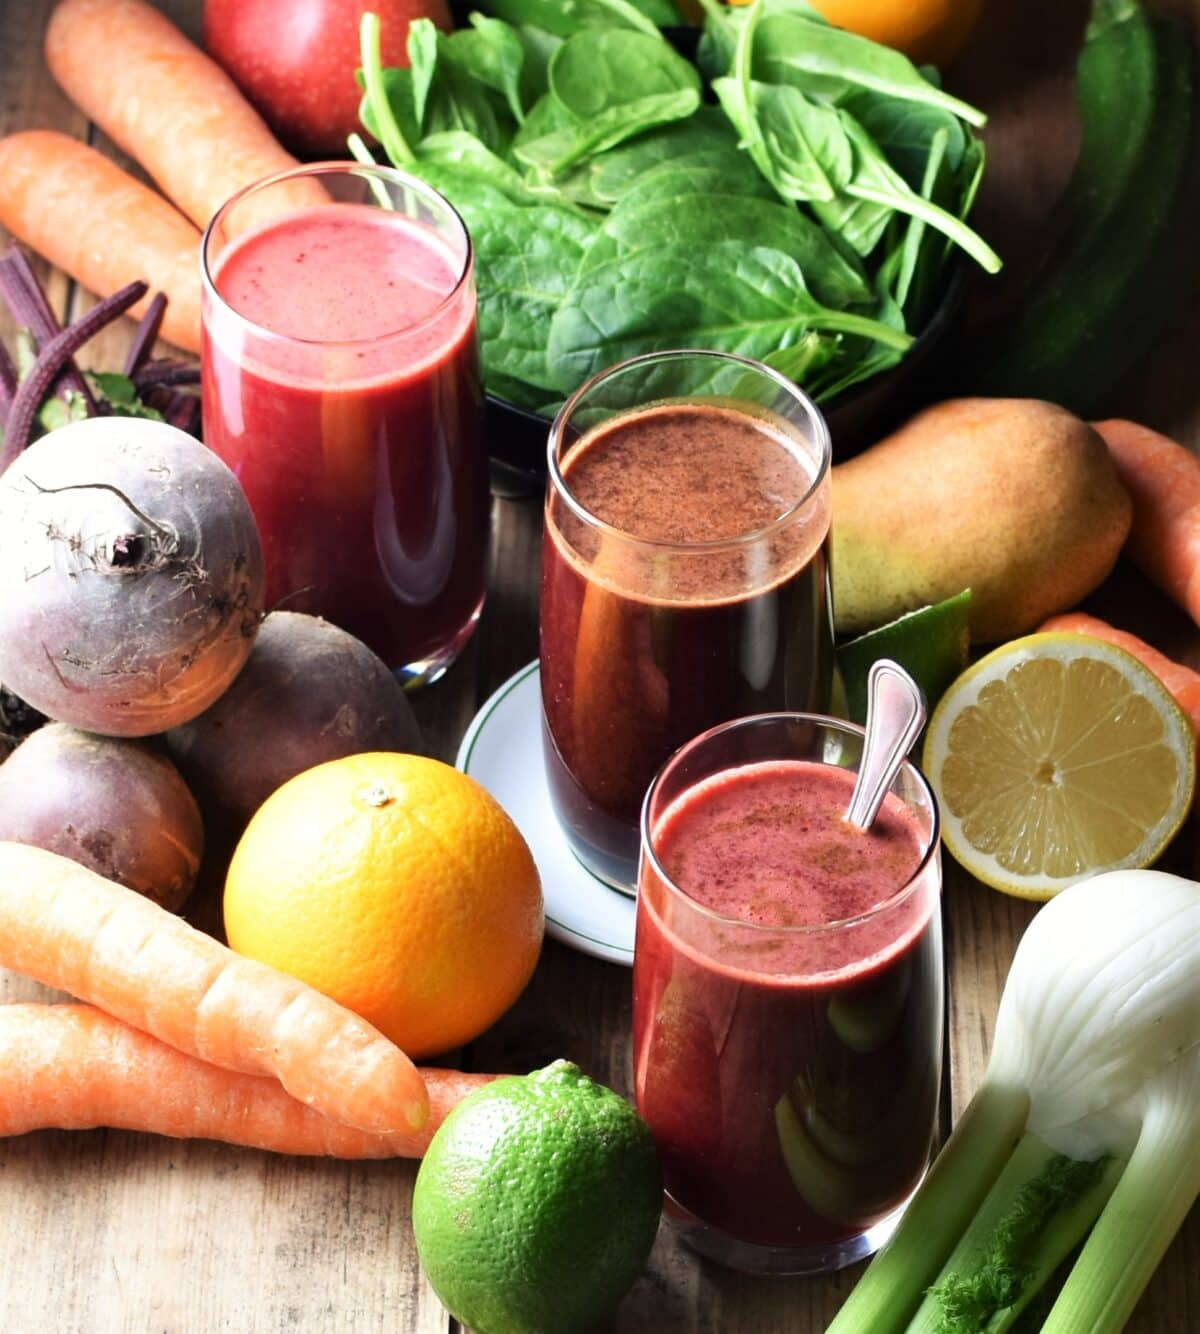 3 glasses with dark juice surrounded by fresh fruits and vegetables.